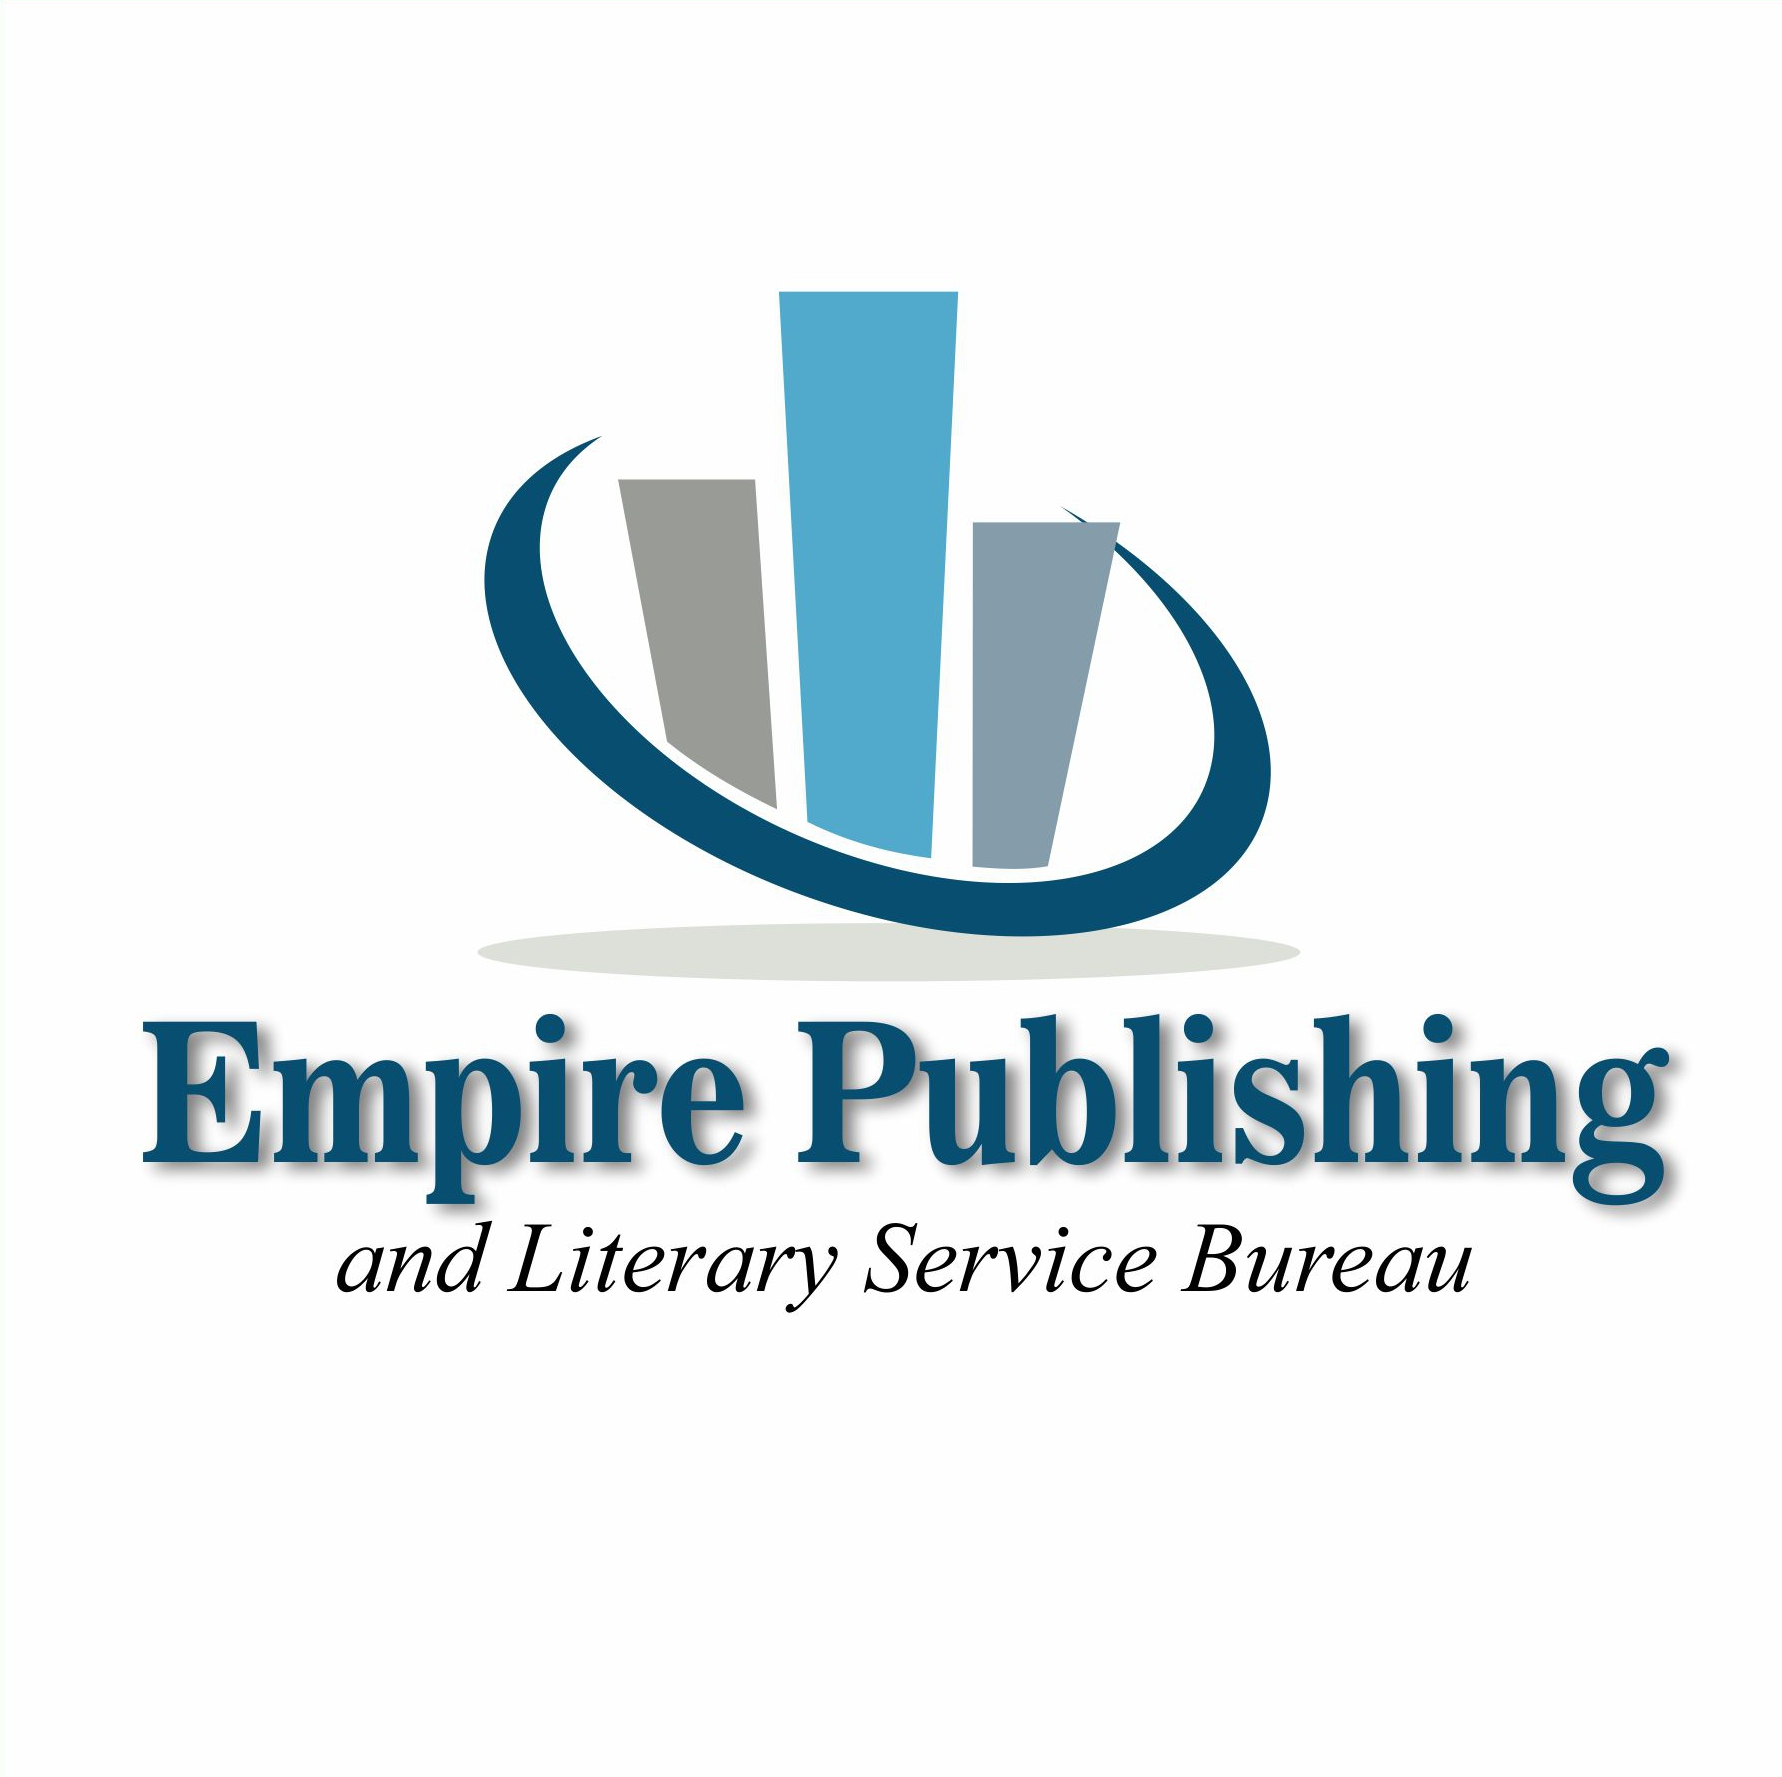 Are you struggling to obtain a traditional publishing contract?